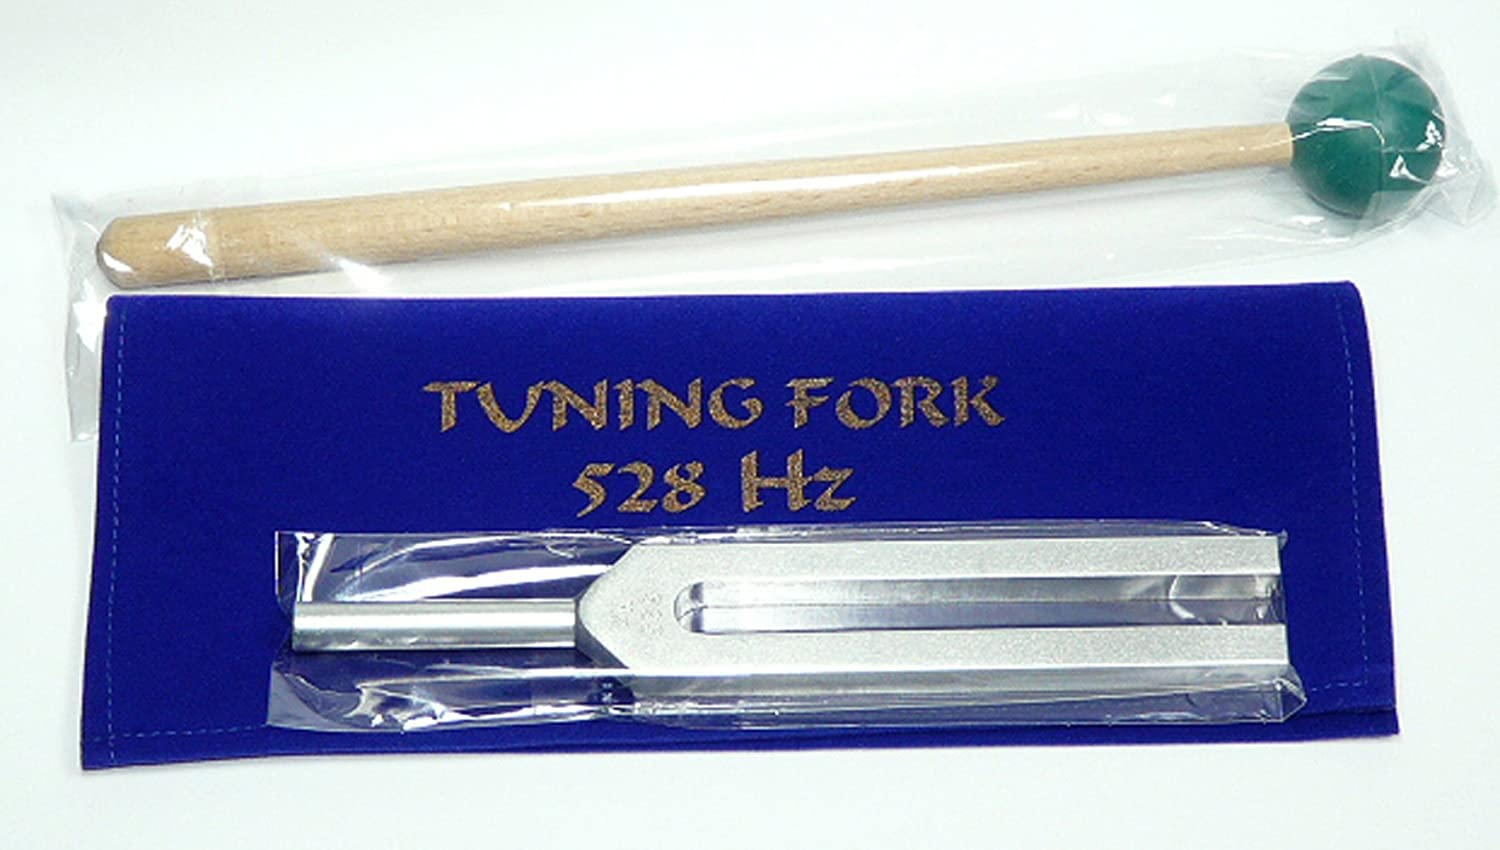 528 Hz Tuning Fork for Healing with mallet+free shipping